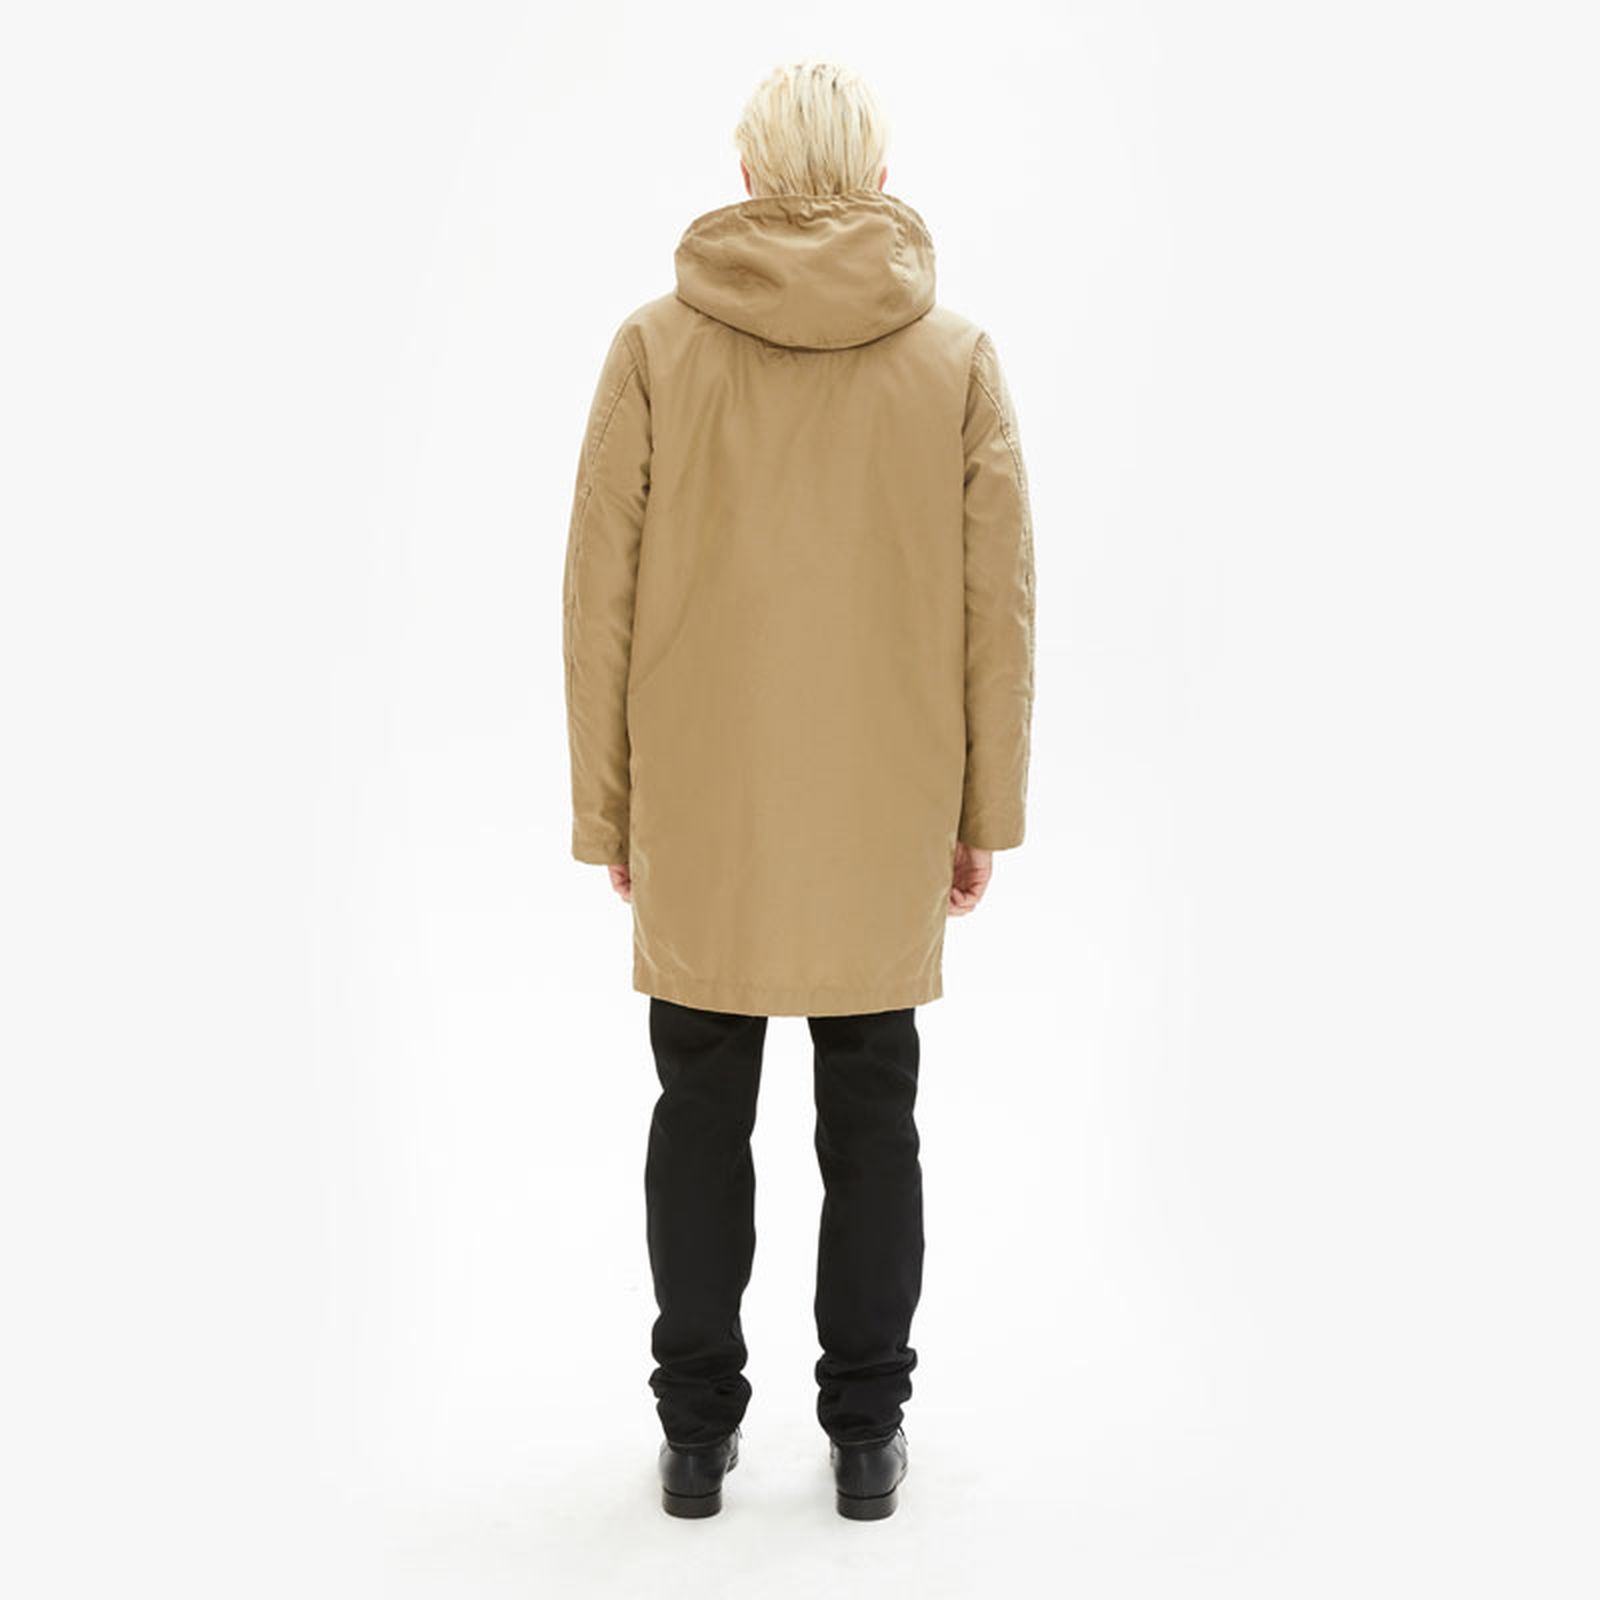 2helmut lang pre owned